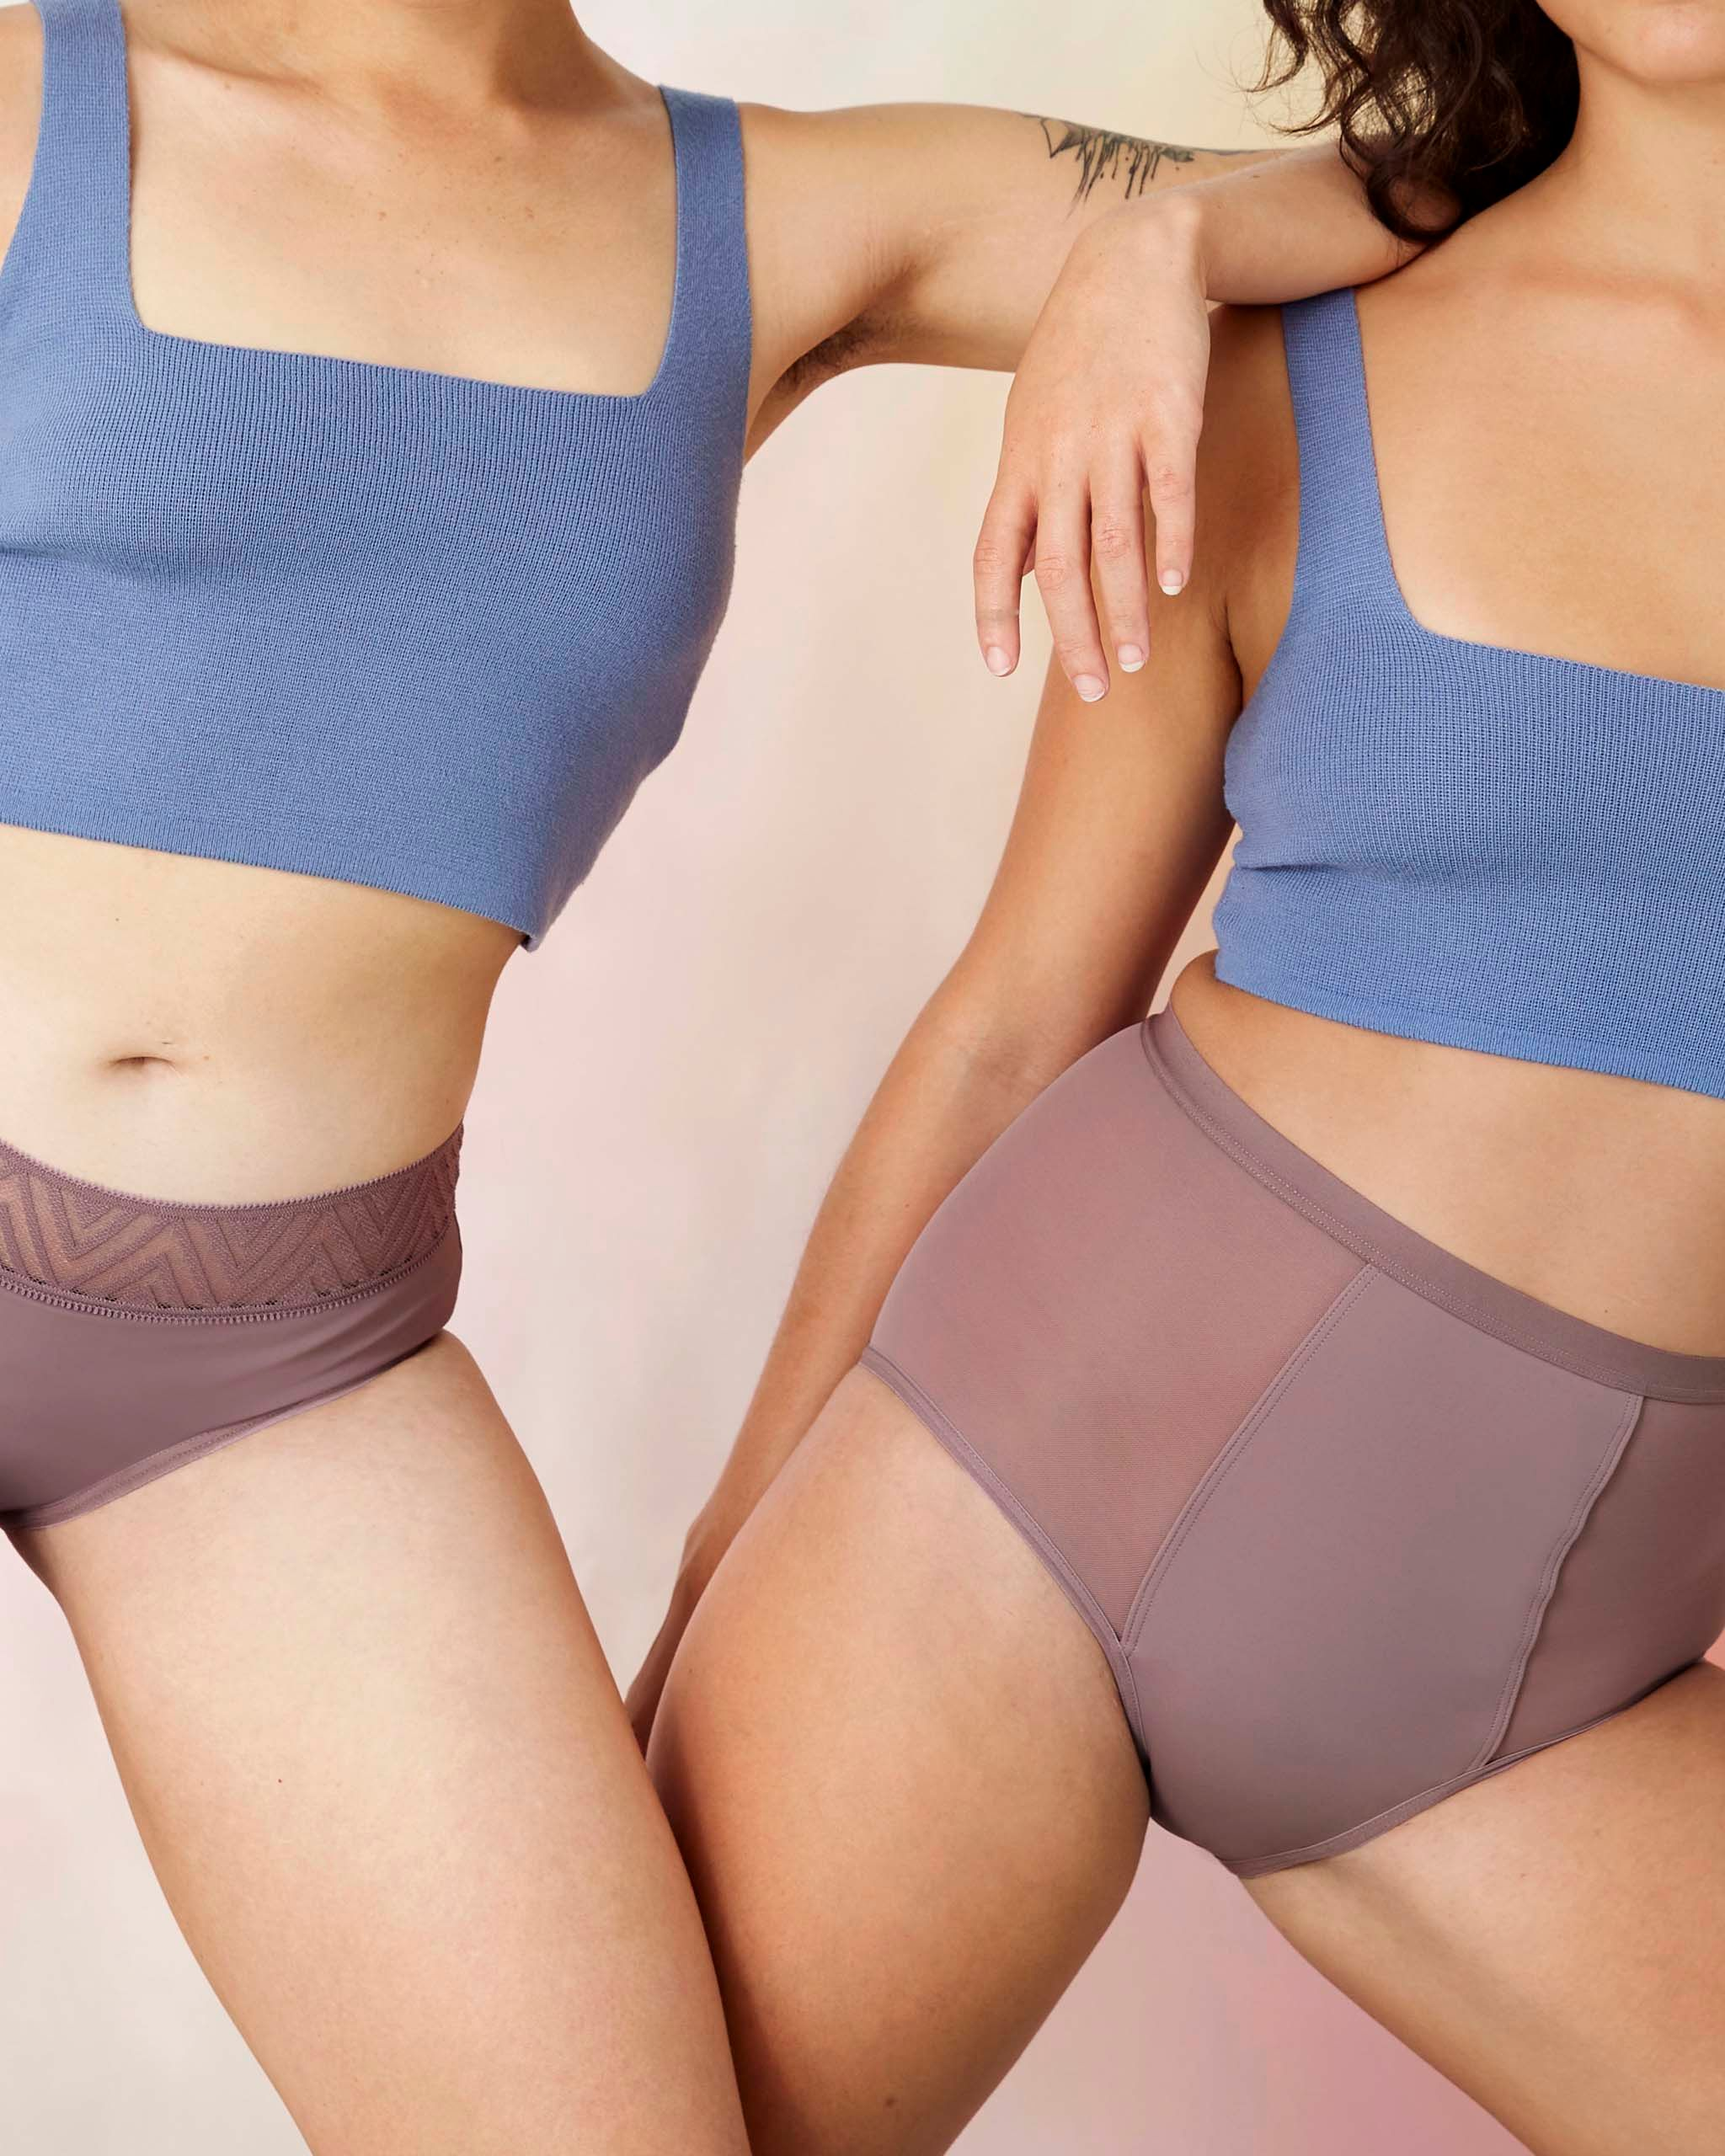 Close up of bodies, two girls are wearing pink Thinx period underwear with blue tank tops.